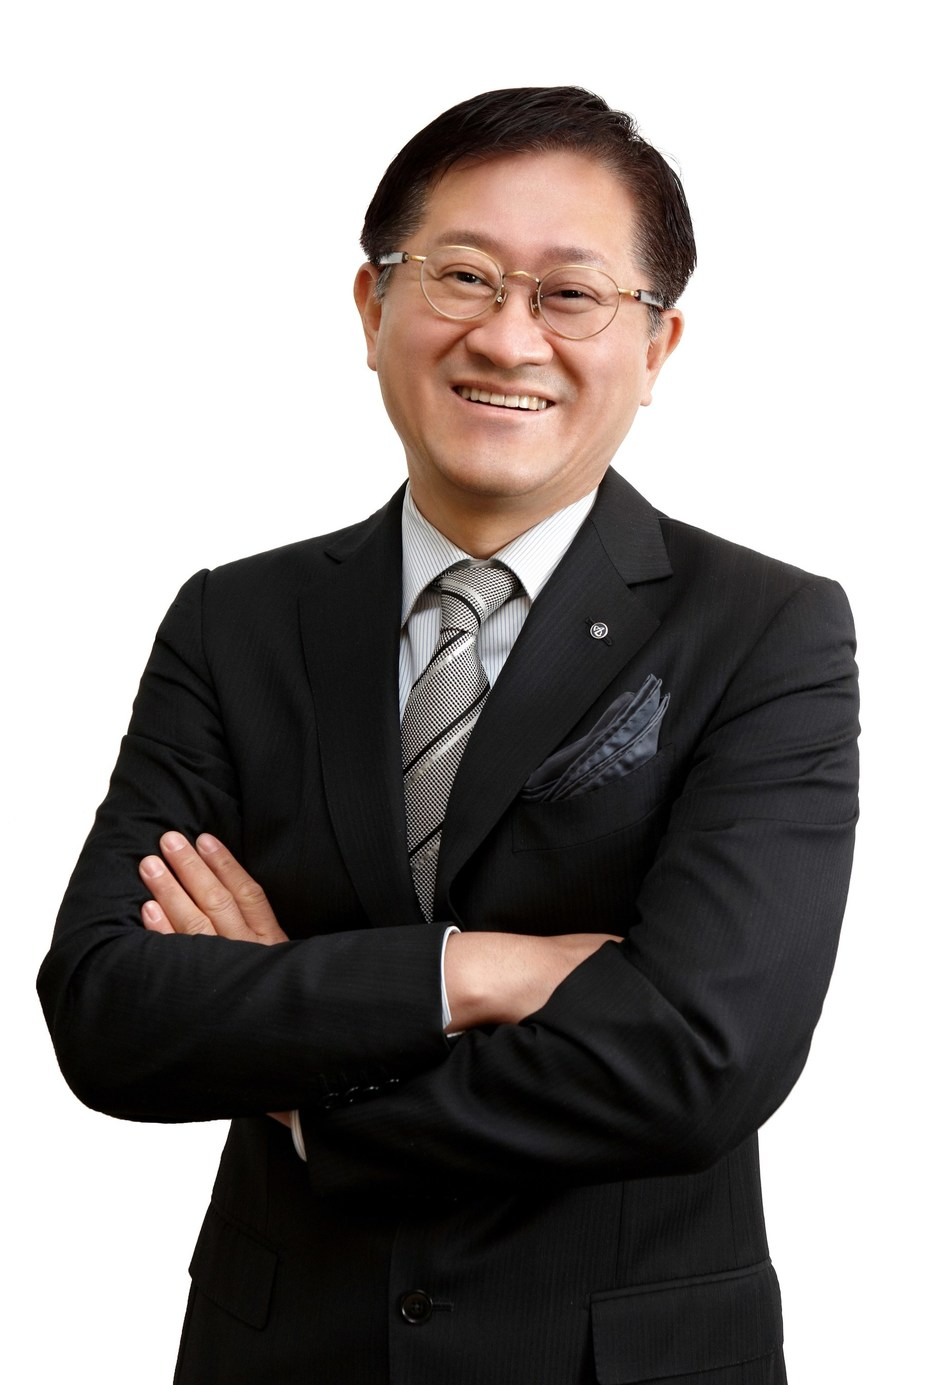 Amorepacific Chairman & CEO, Suh Kyung-bae